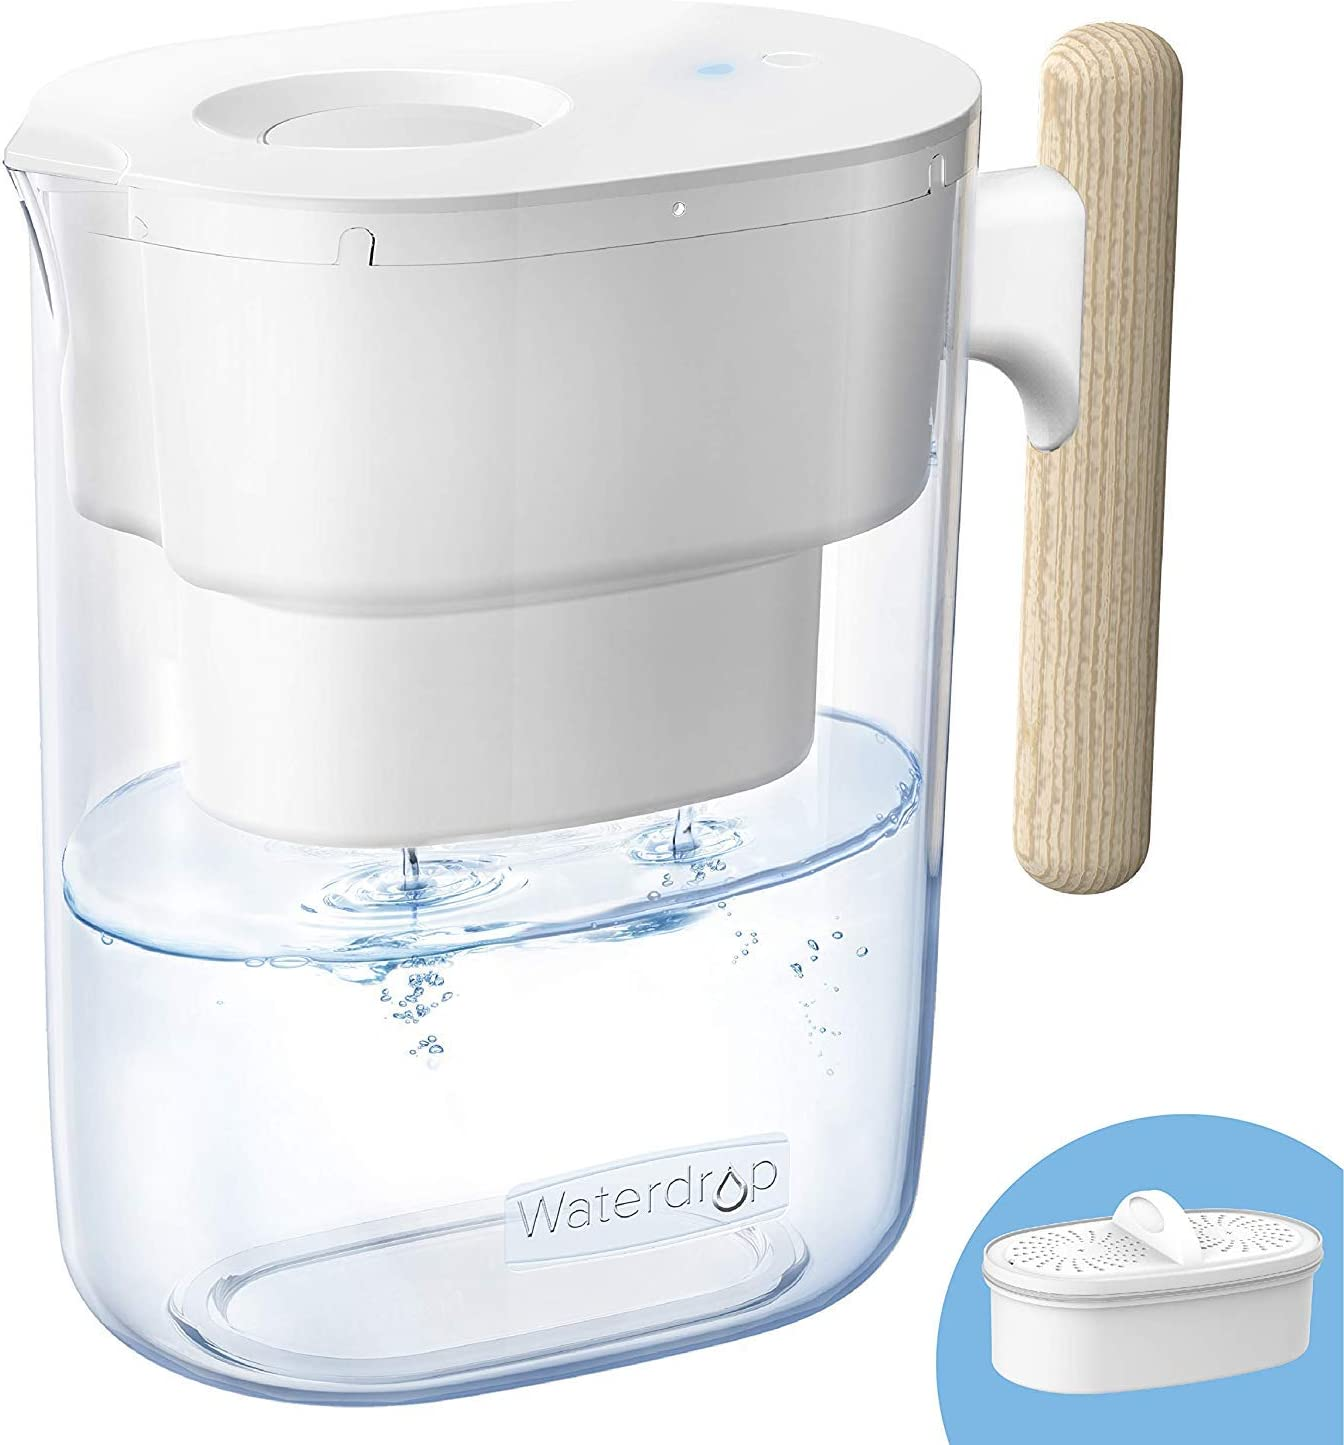 Waterdrop Chubby 10-Cup Water Filter Pitcher, Long-lasting (200 gallons), 5X Times Lifetime Filtration Jug, Reduces Lead, Fluoride, Chlorine and More, BPA Free, White